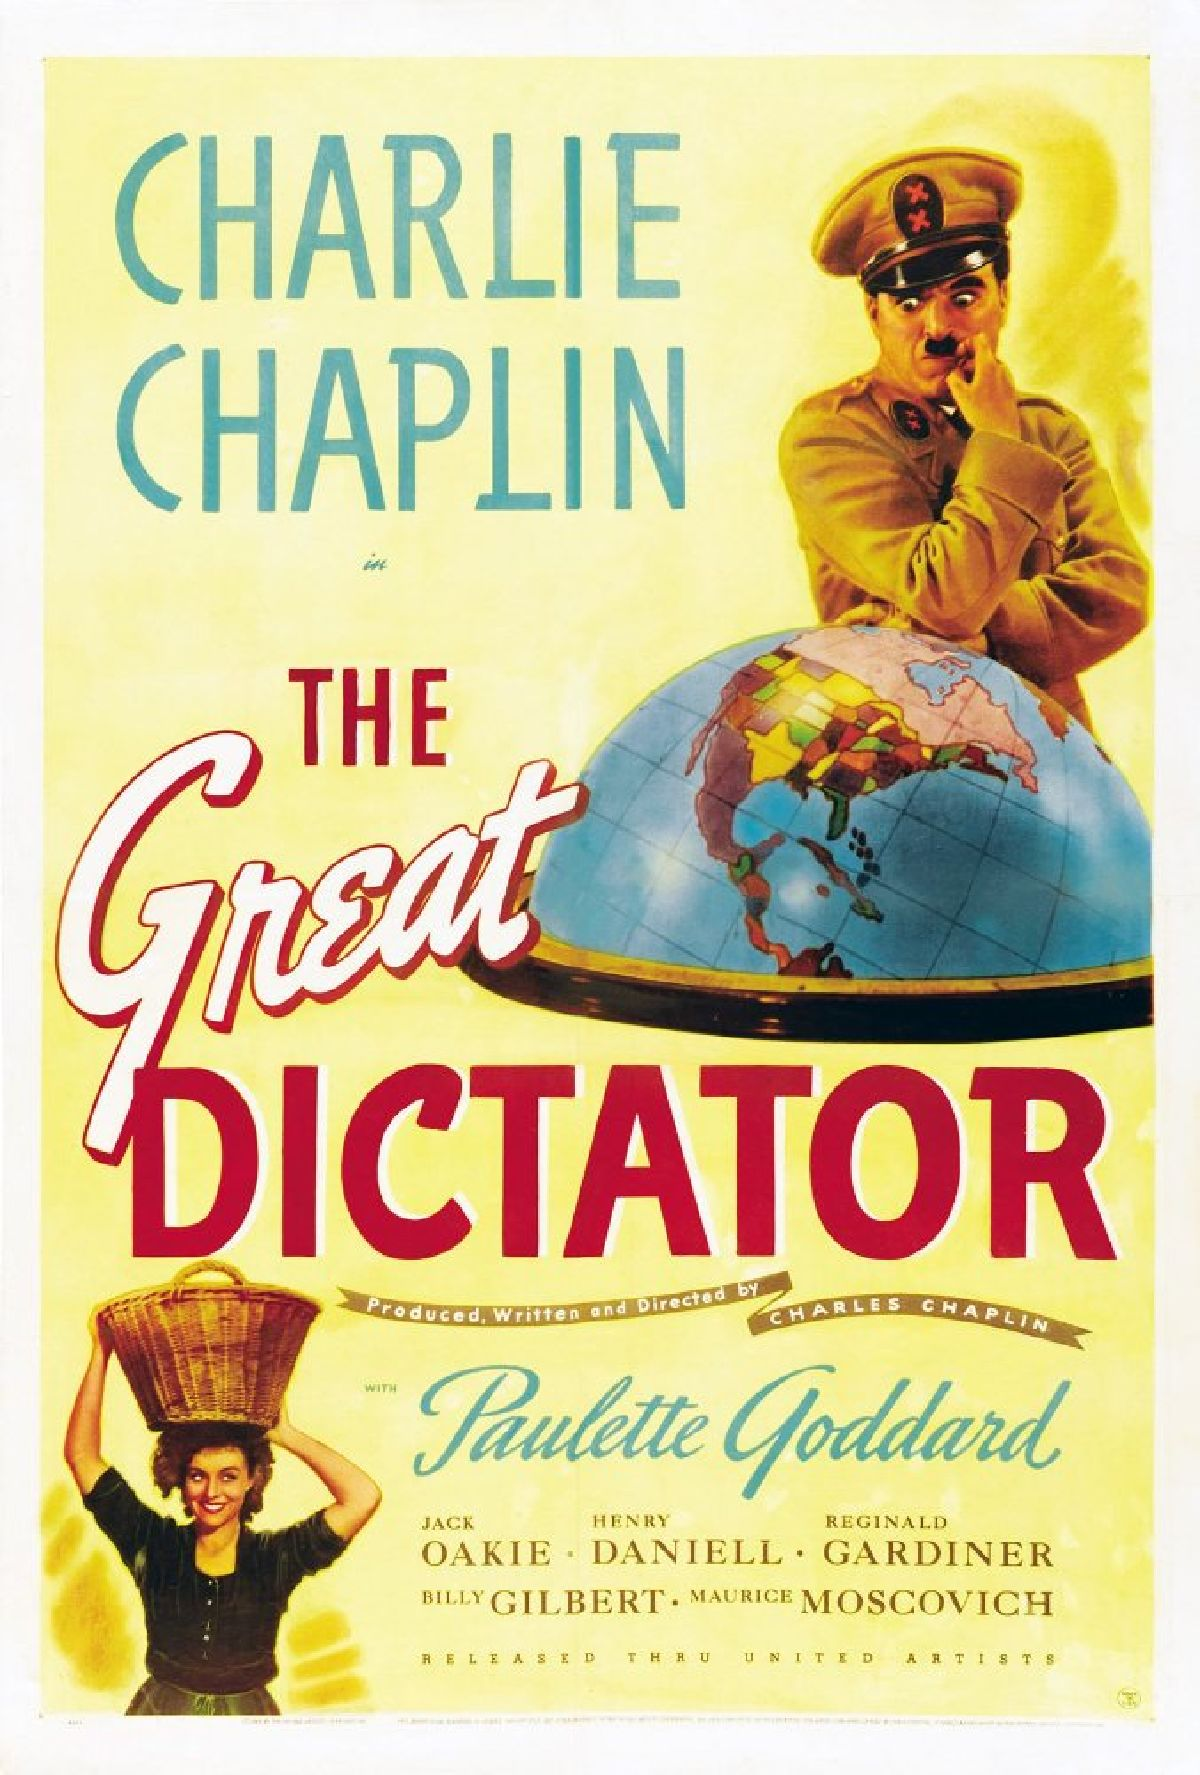 'The Great Dictator' movie poster